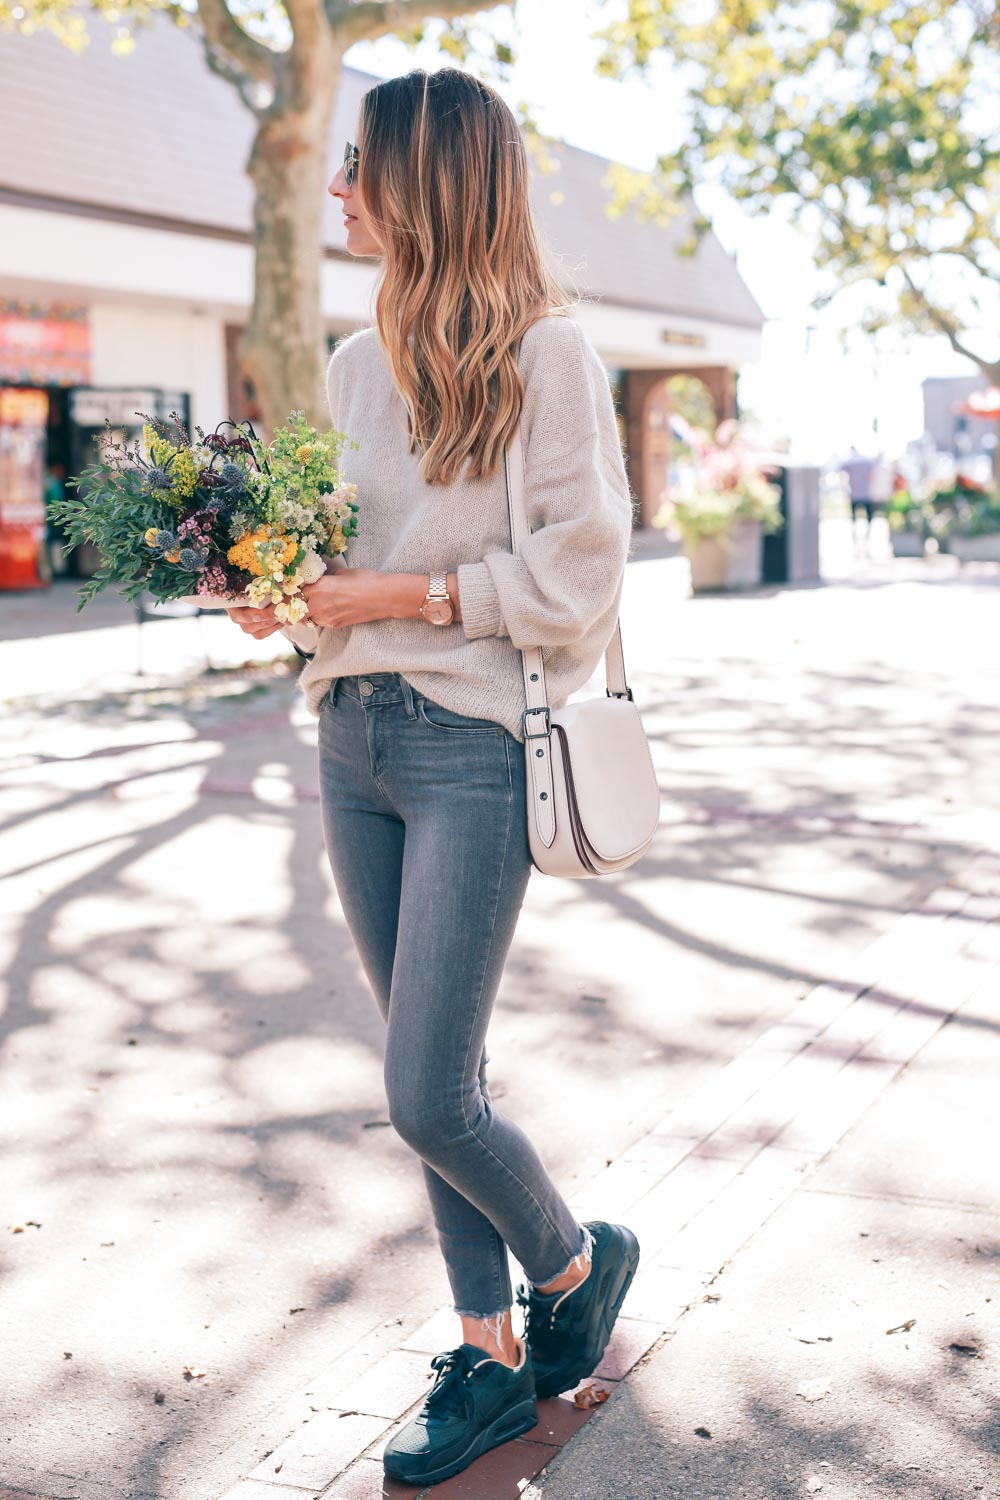 Sneakers are a must with skinny jeans and a sweater. Jess Ann Kirby has  chosen